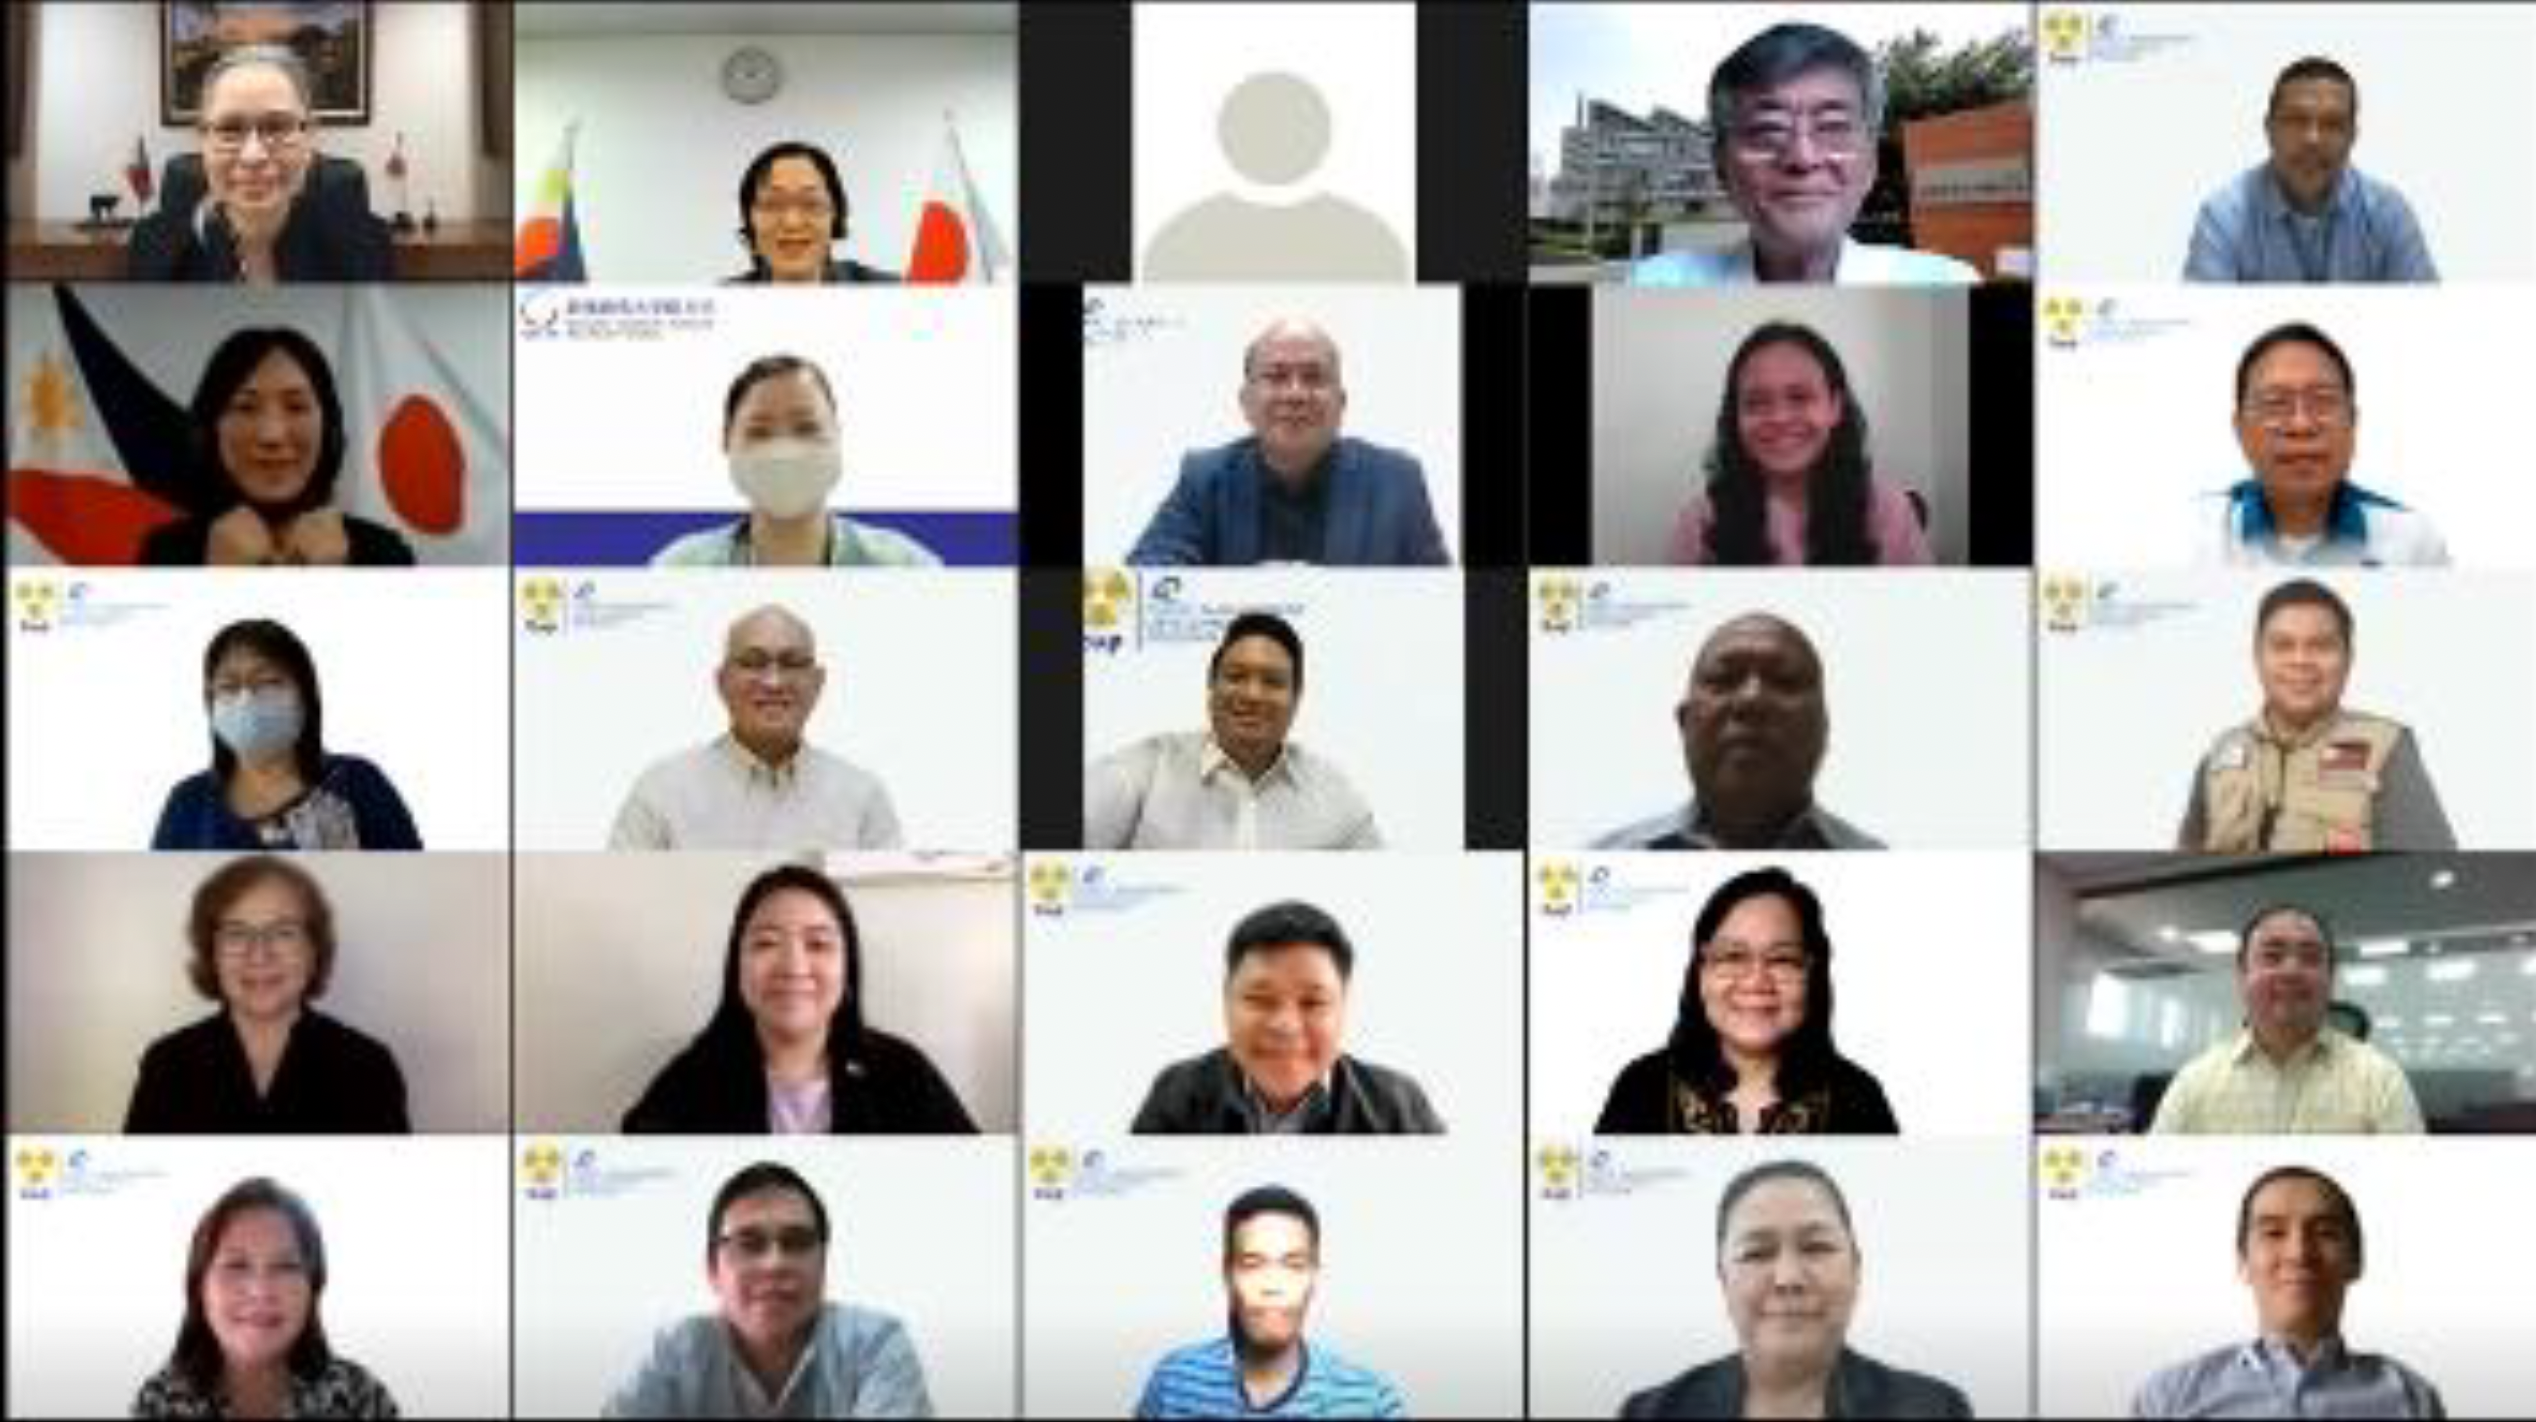 Phronetic Leadership Class 3 Observational Study Visit in Japan 2021